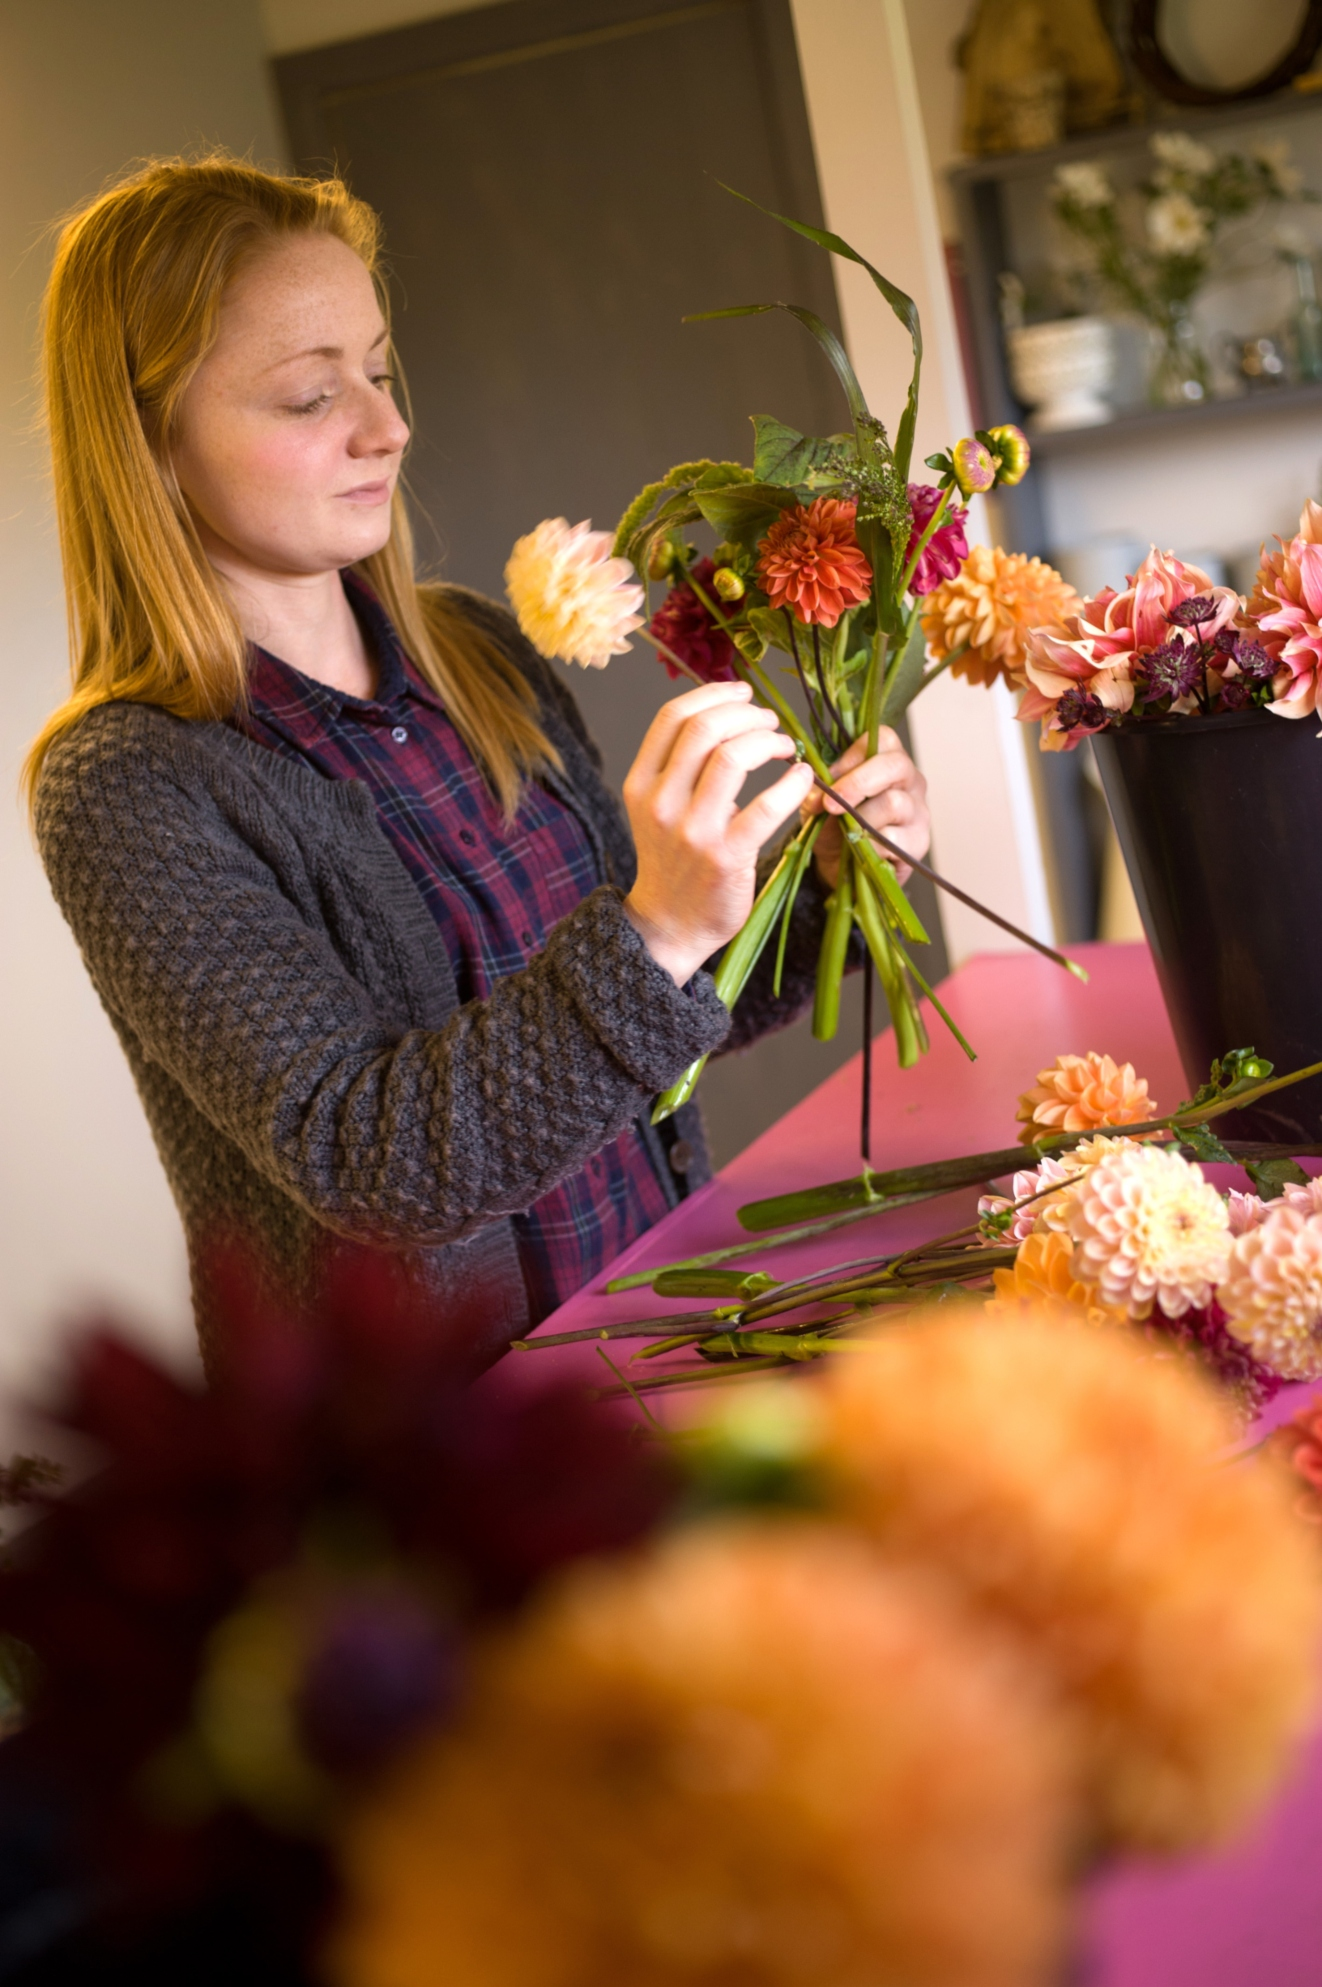 Ginger House Garden prepare for a flower arranging class in a Crabtree & Crabtree holiday home.